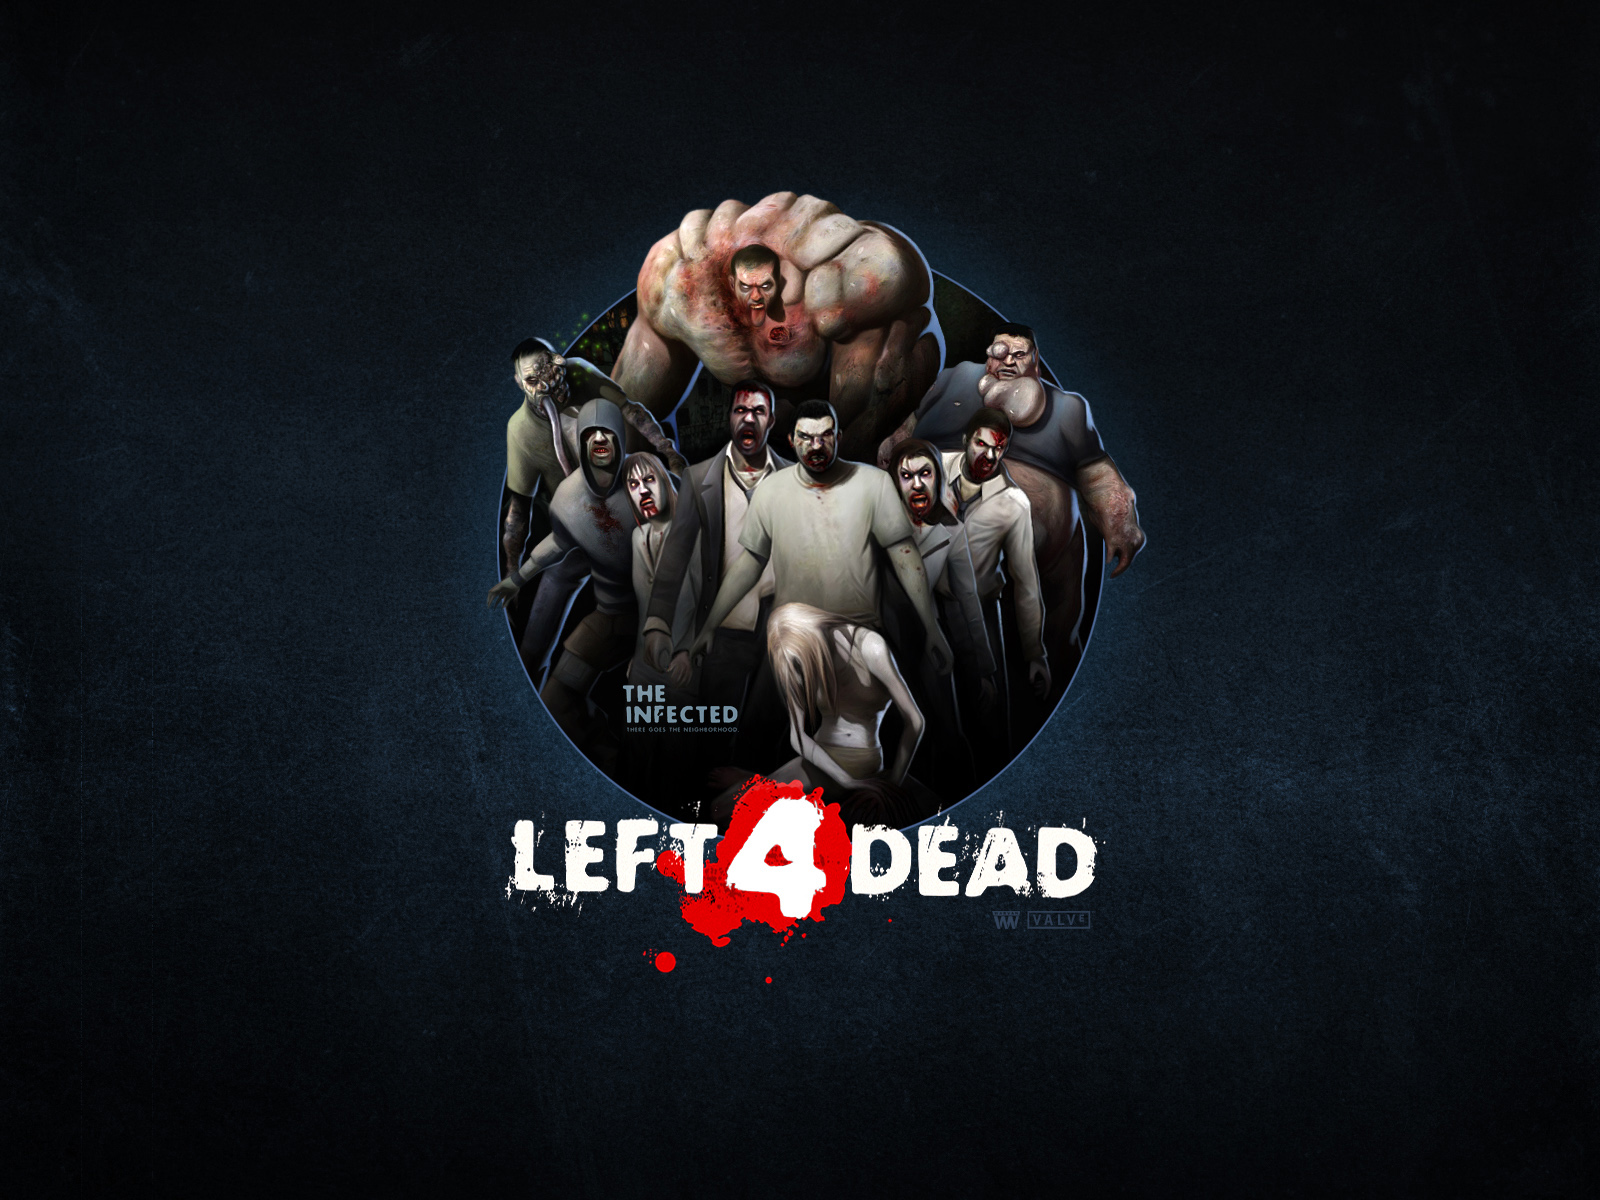 Left 4 dead 3 nudity xxx scene